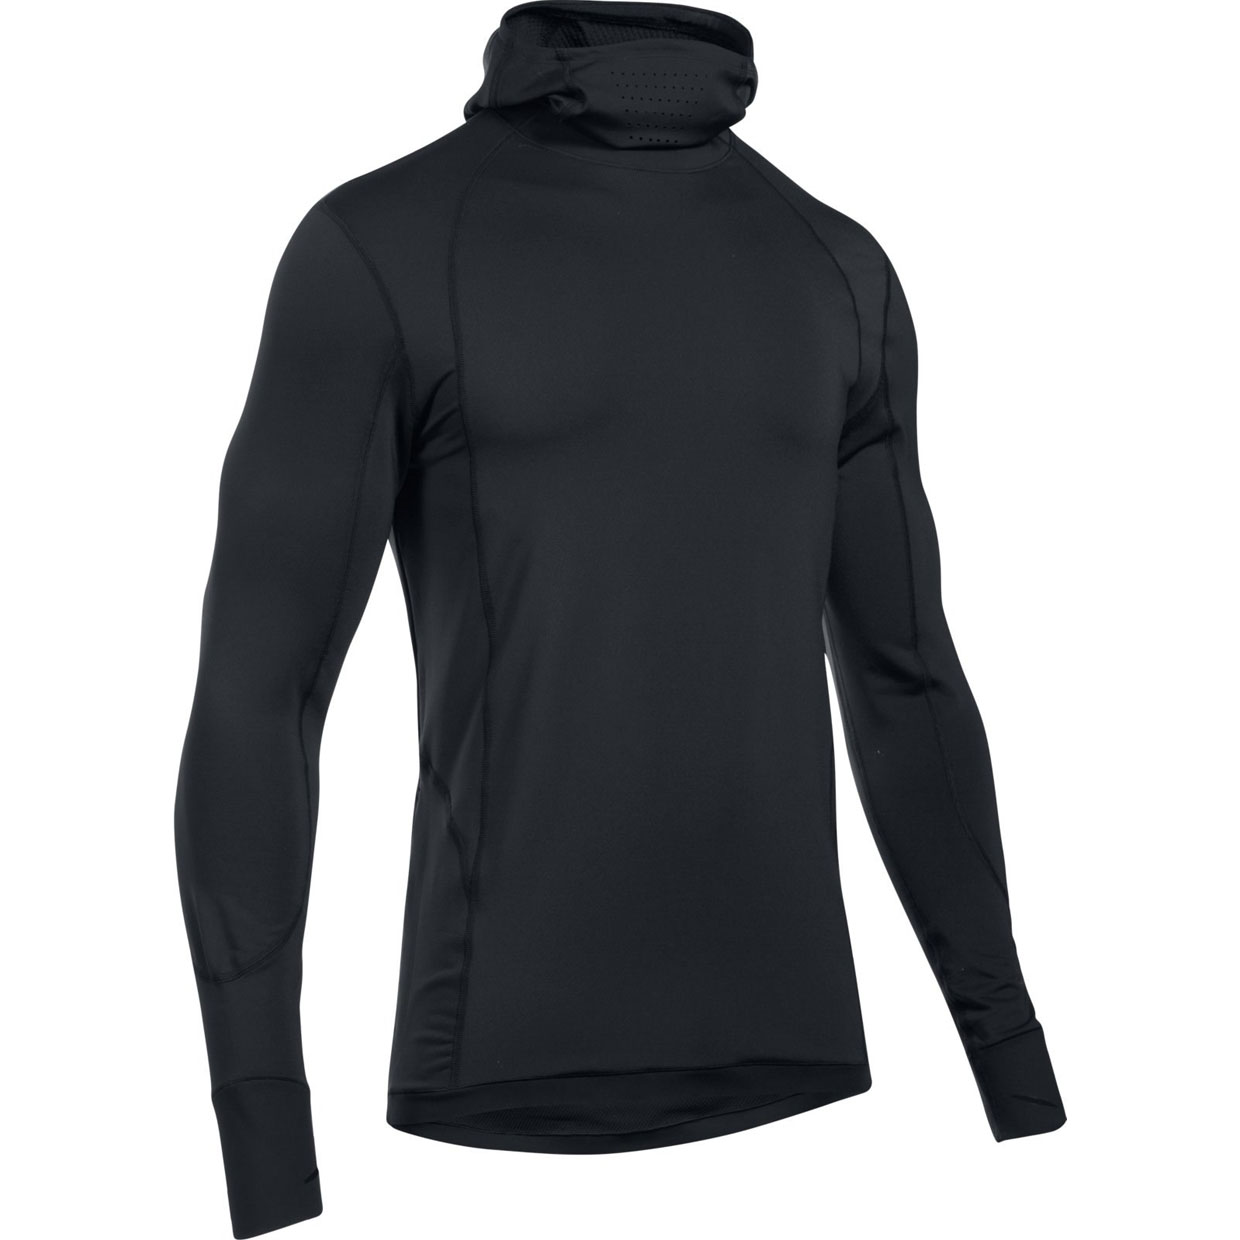 available from 10.11 Under Armour running blazer men  1298837-001